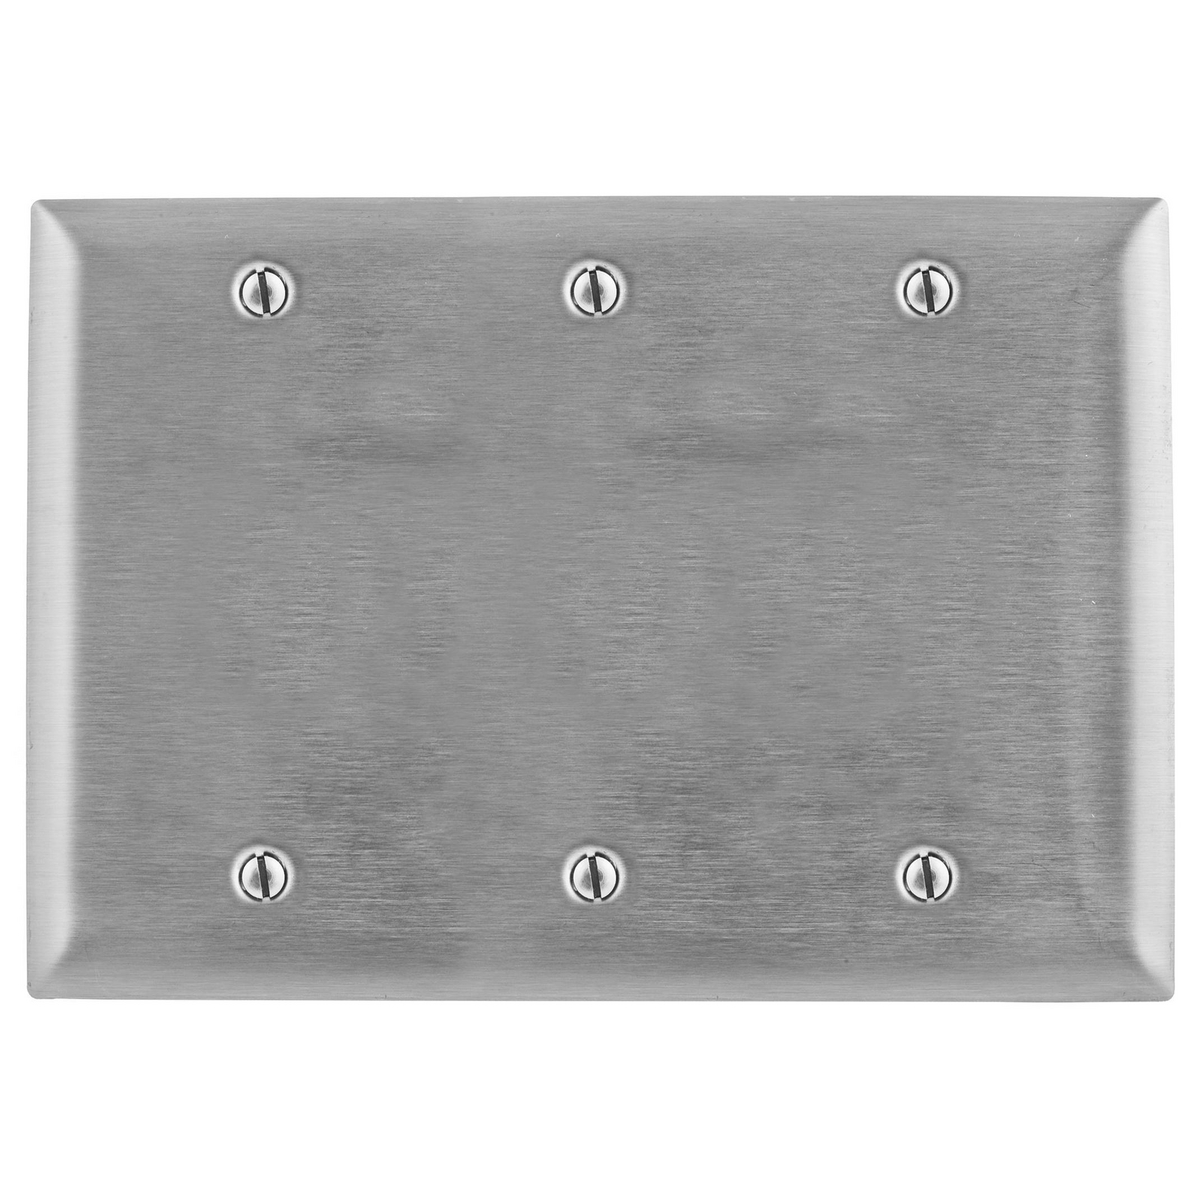 Hubbell SS33 3-Gang Stainless Steel 3-Blank Box Mount Wallplate